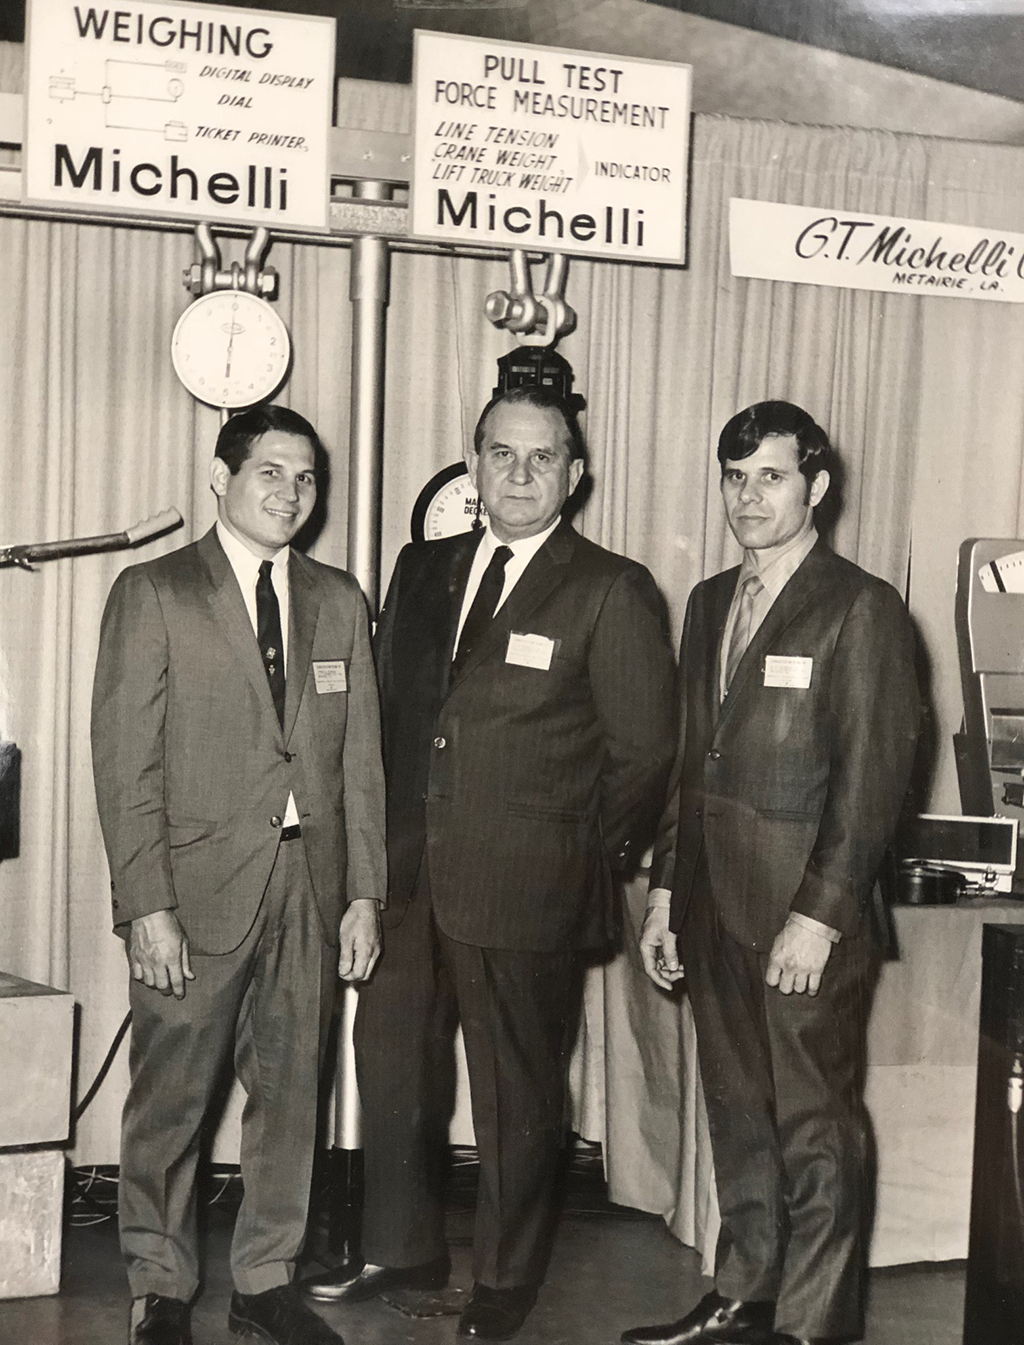 michelli weighing